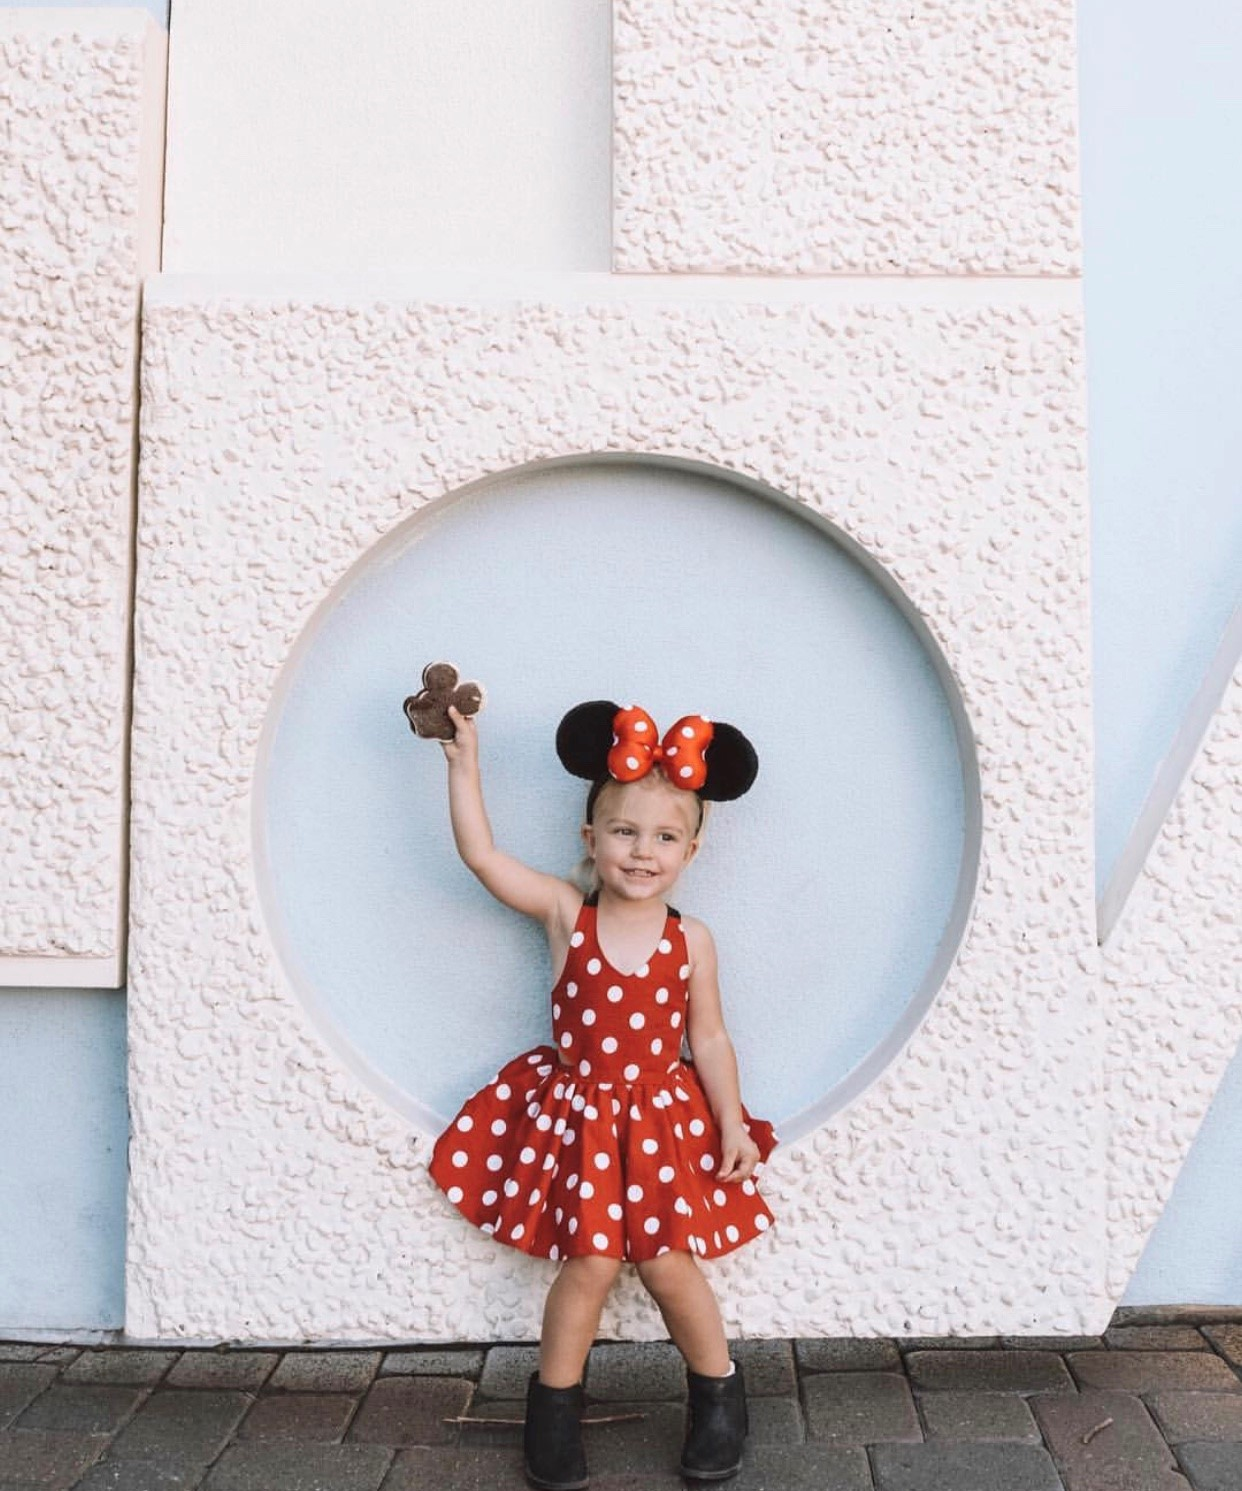 Toddler Kids Minnie Mouse Dress - Toddler Girl Holiday Christmas Gift Ideas Unique - The Overwhelmed Mommy Blogger